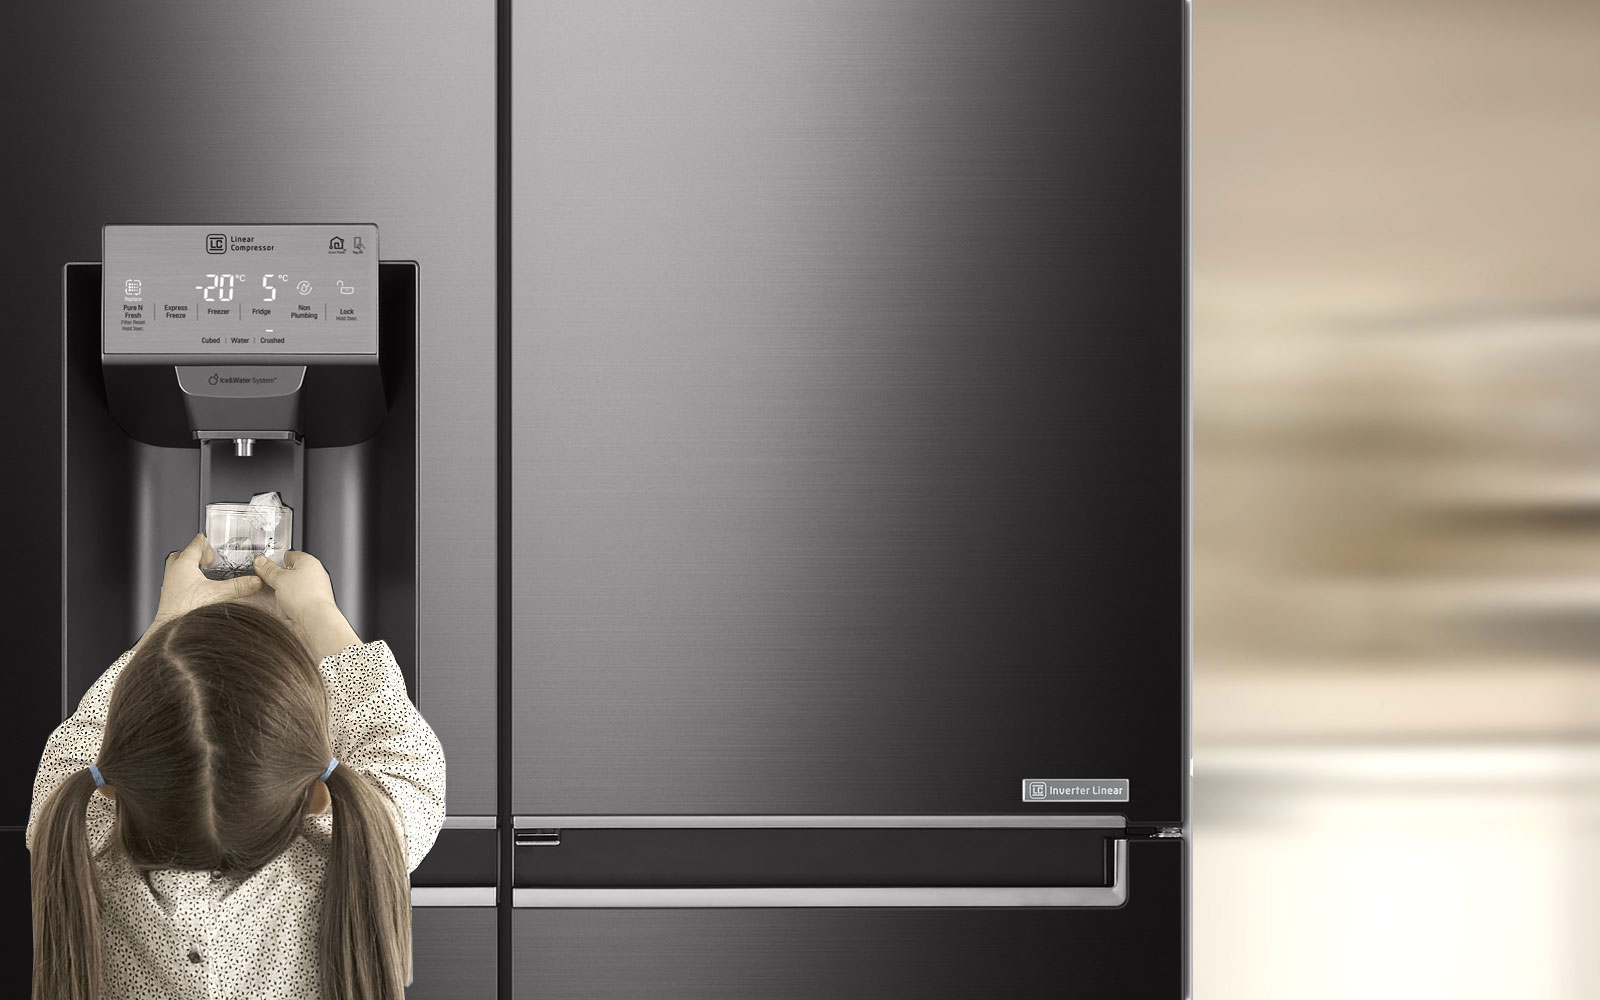 LG Fridges - Tall Ice & Water Dispenser